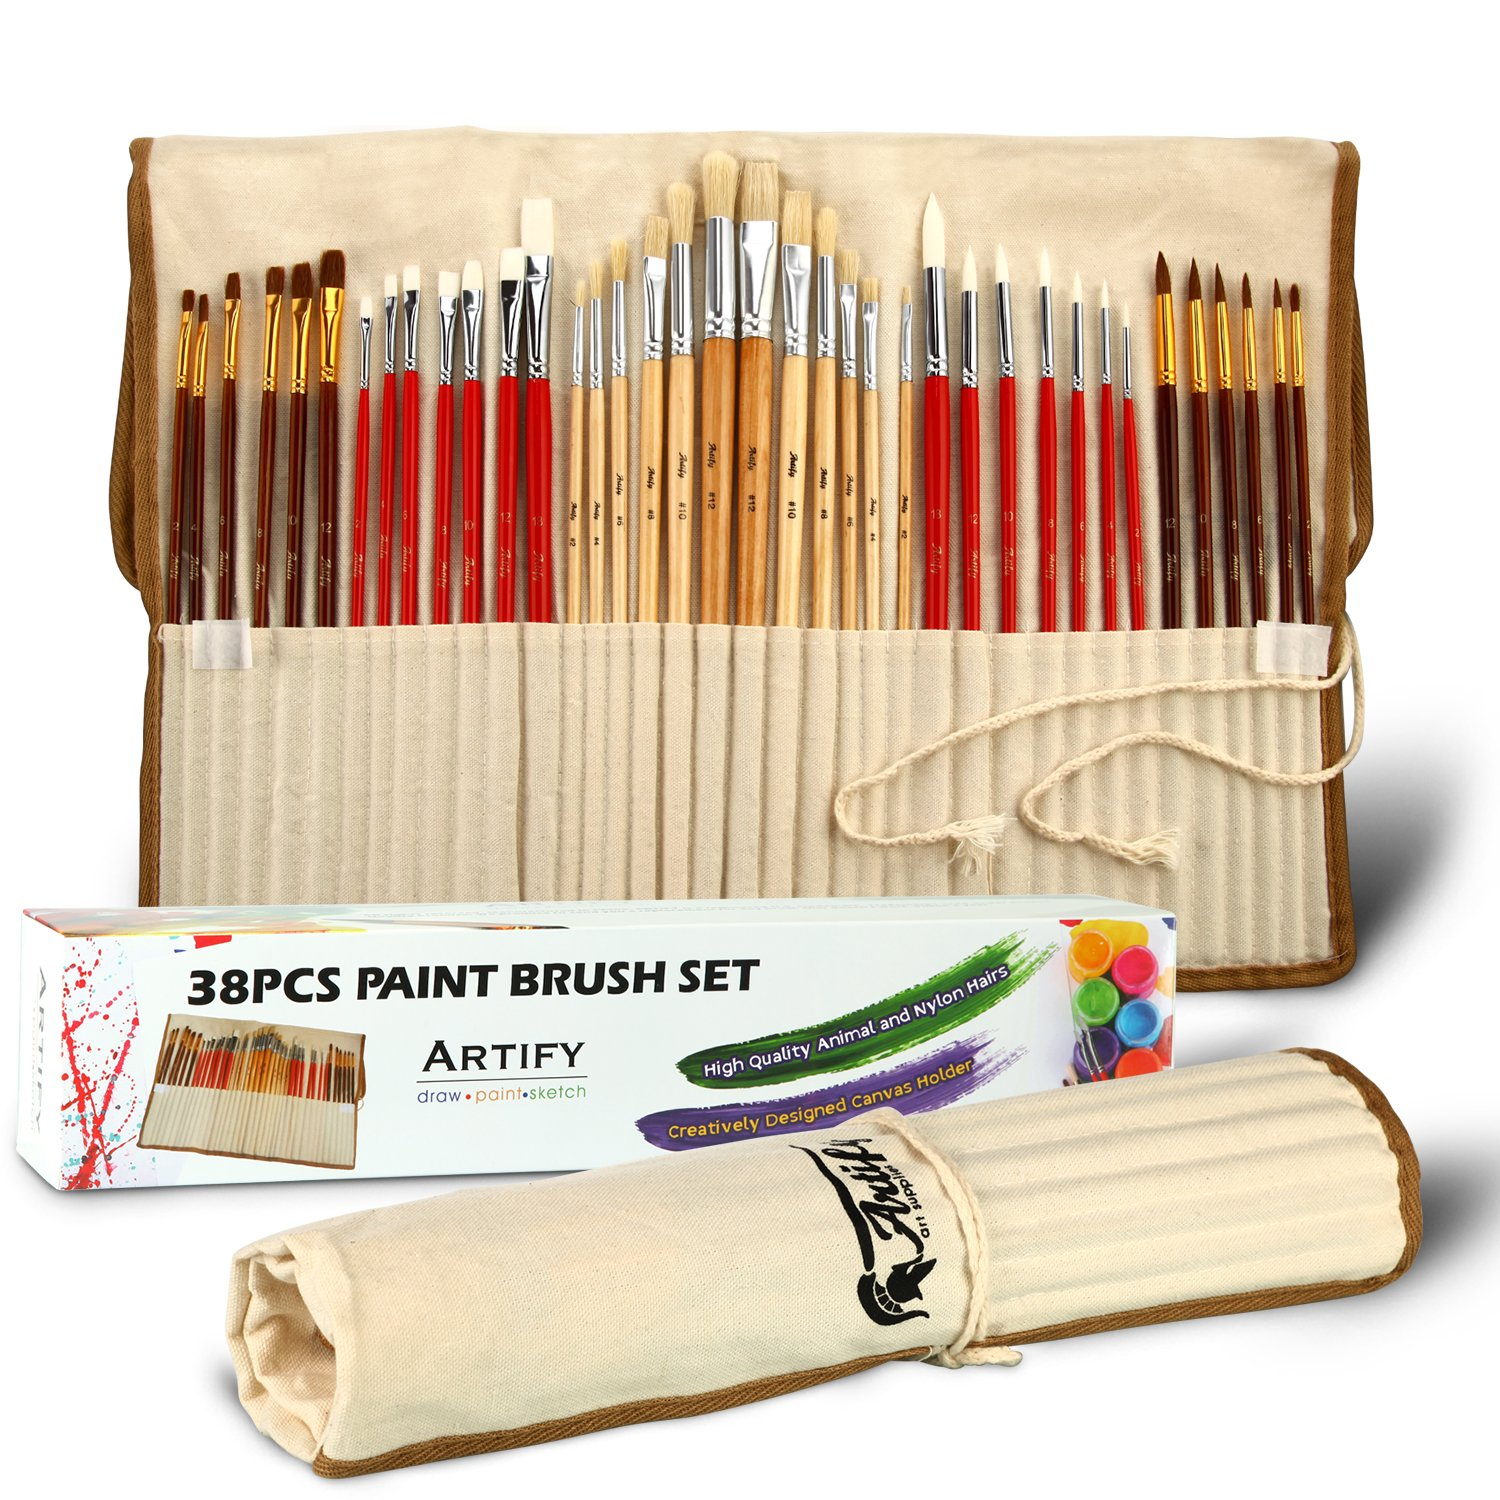 Artify 38 Pcs Paint Brushes Art Set for Acrylic Oil Watercolor Gouache  a Kit of Hog Pony and Nylon Hairs  Including Two Large Size Nylon Brushes and a Carrying Pouch